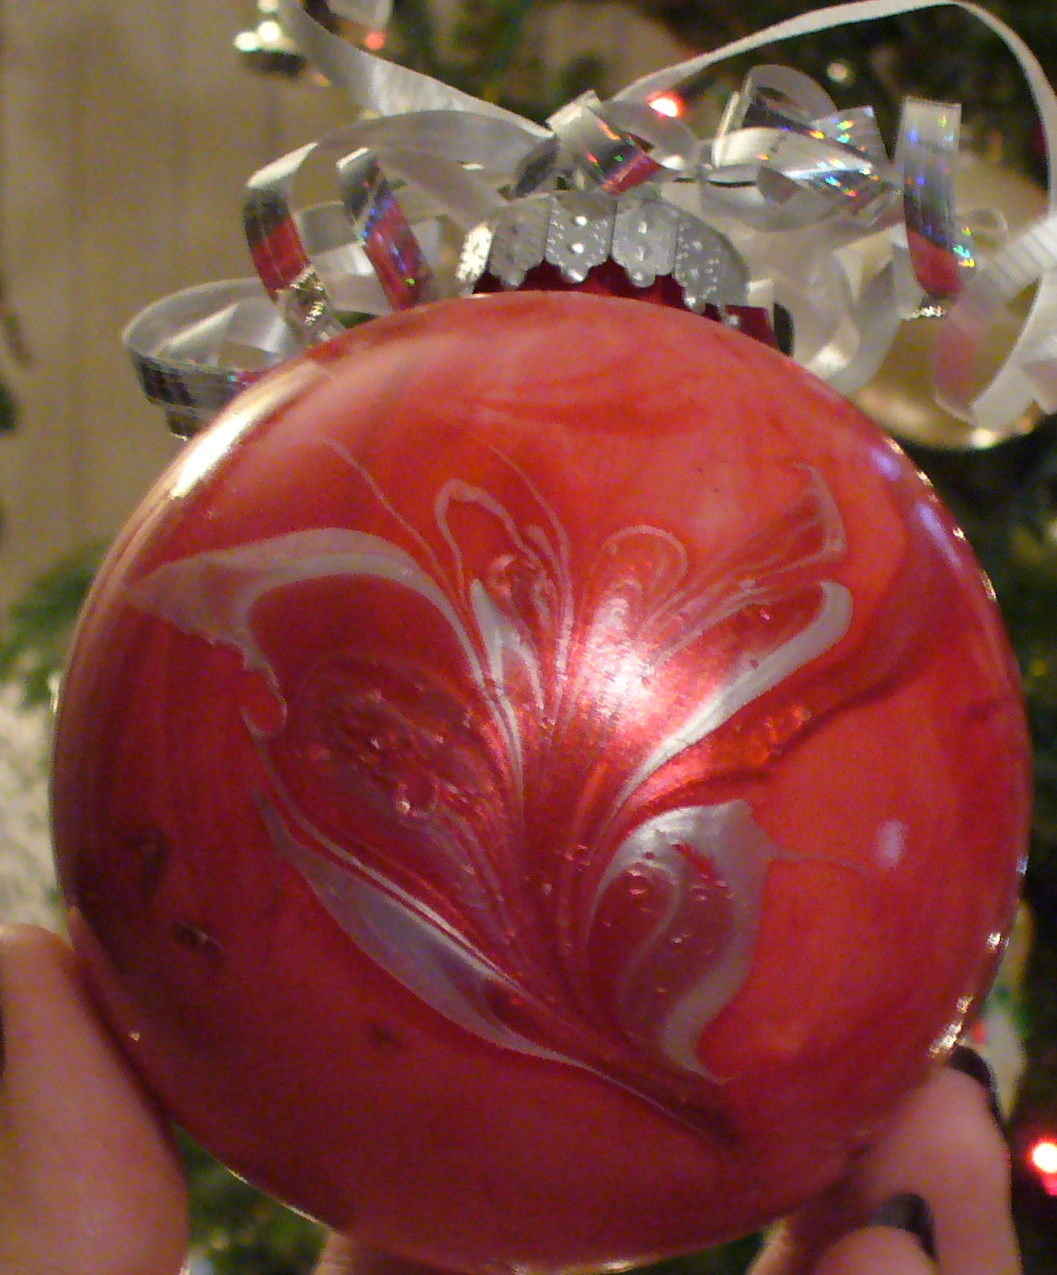 Marble Christmas Ornaments – With Nail Polish! - A Sparkly ...